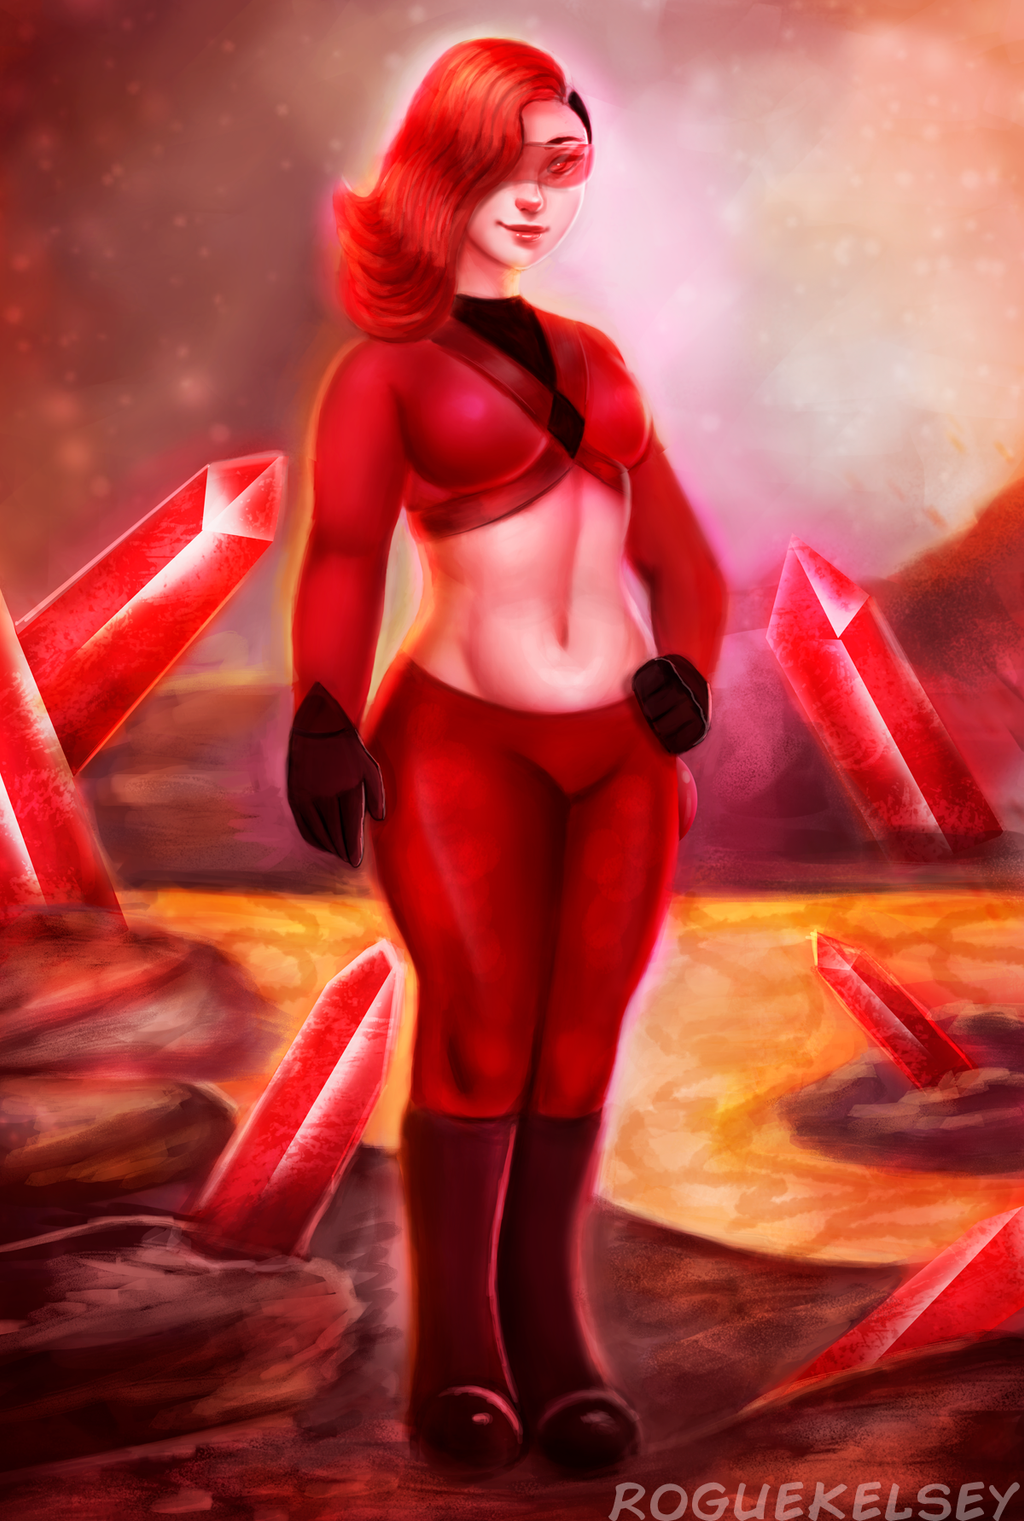 [Challenge Prize] Red Onyx by ROGUEKELSEY